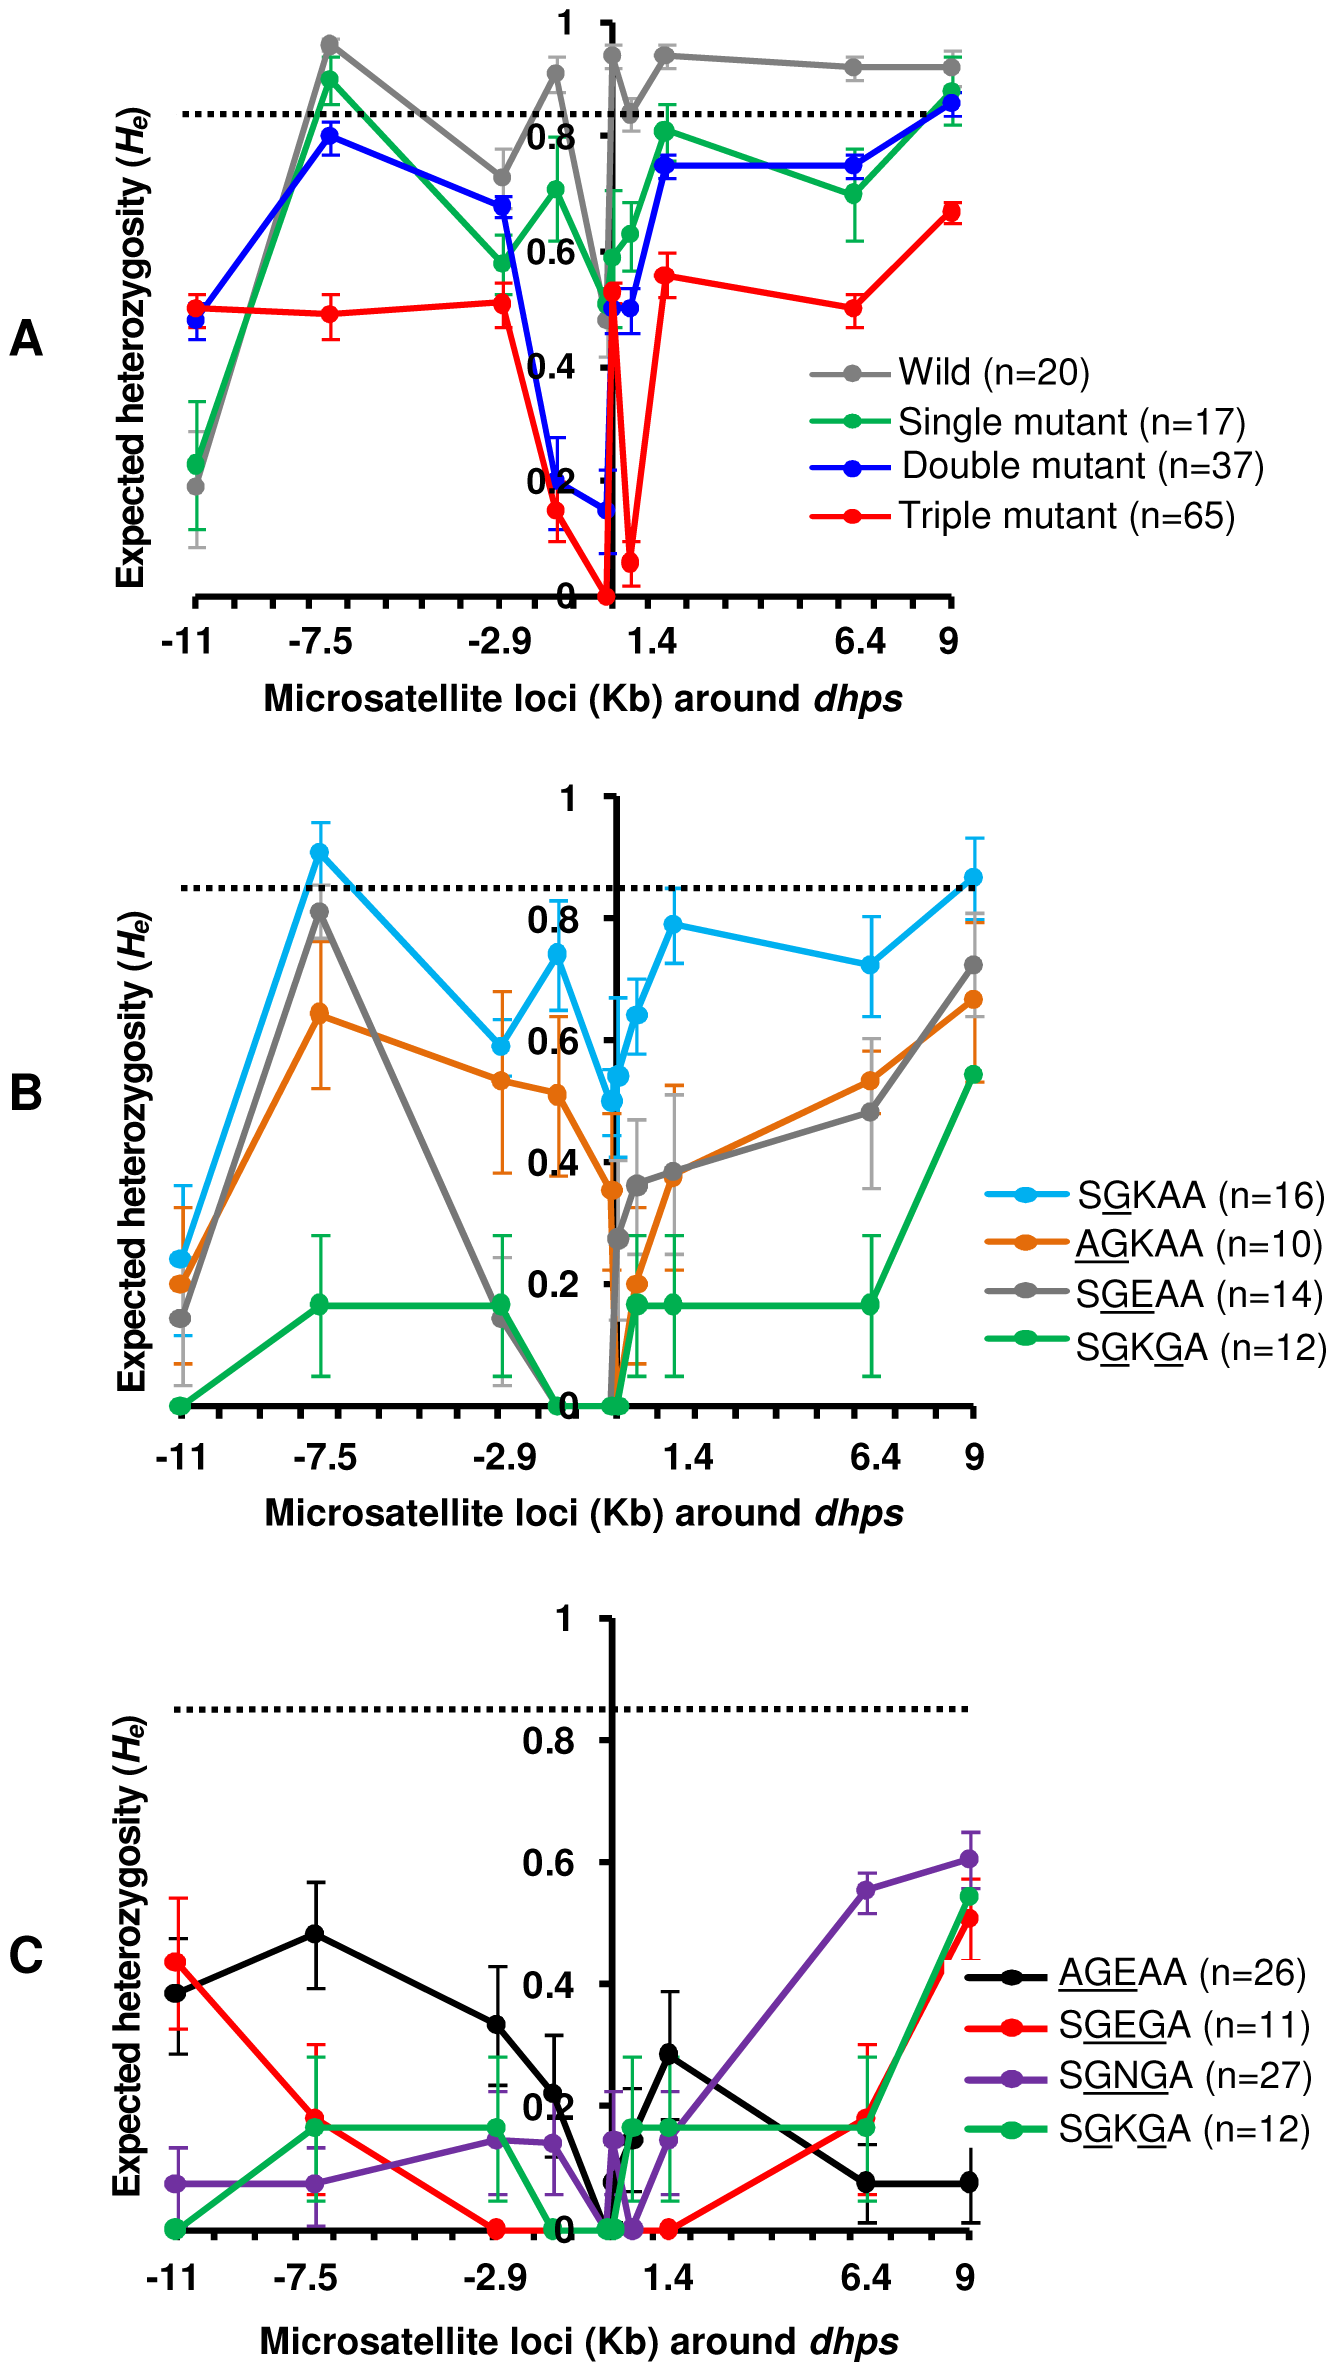 Selective sweeps around <i>dhps</i> alleles in Cambodia.